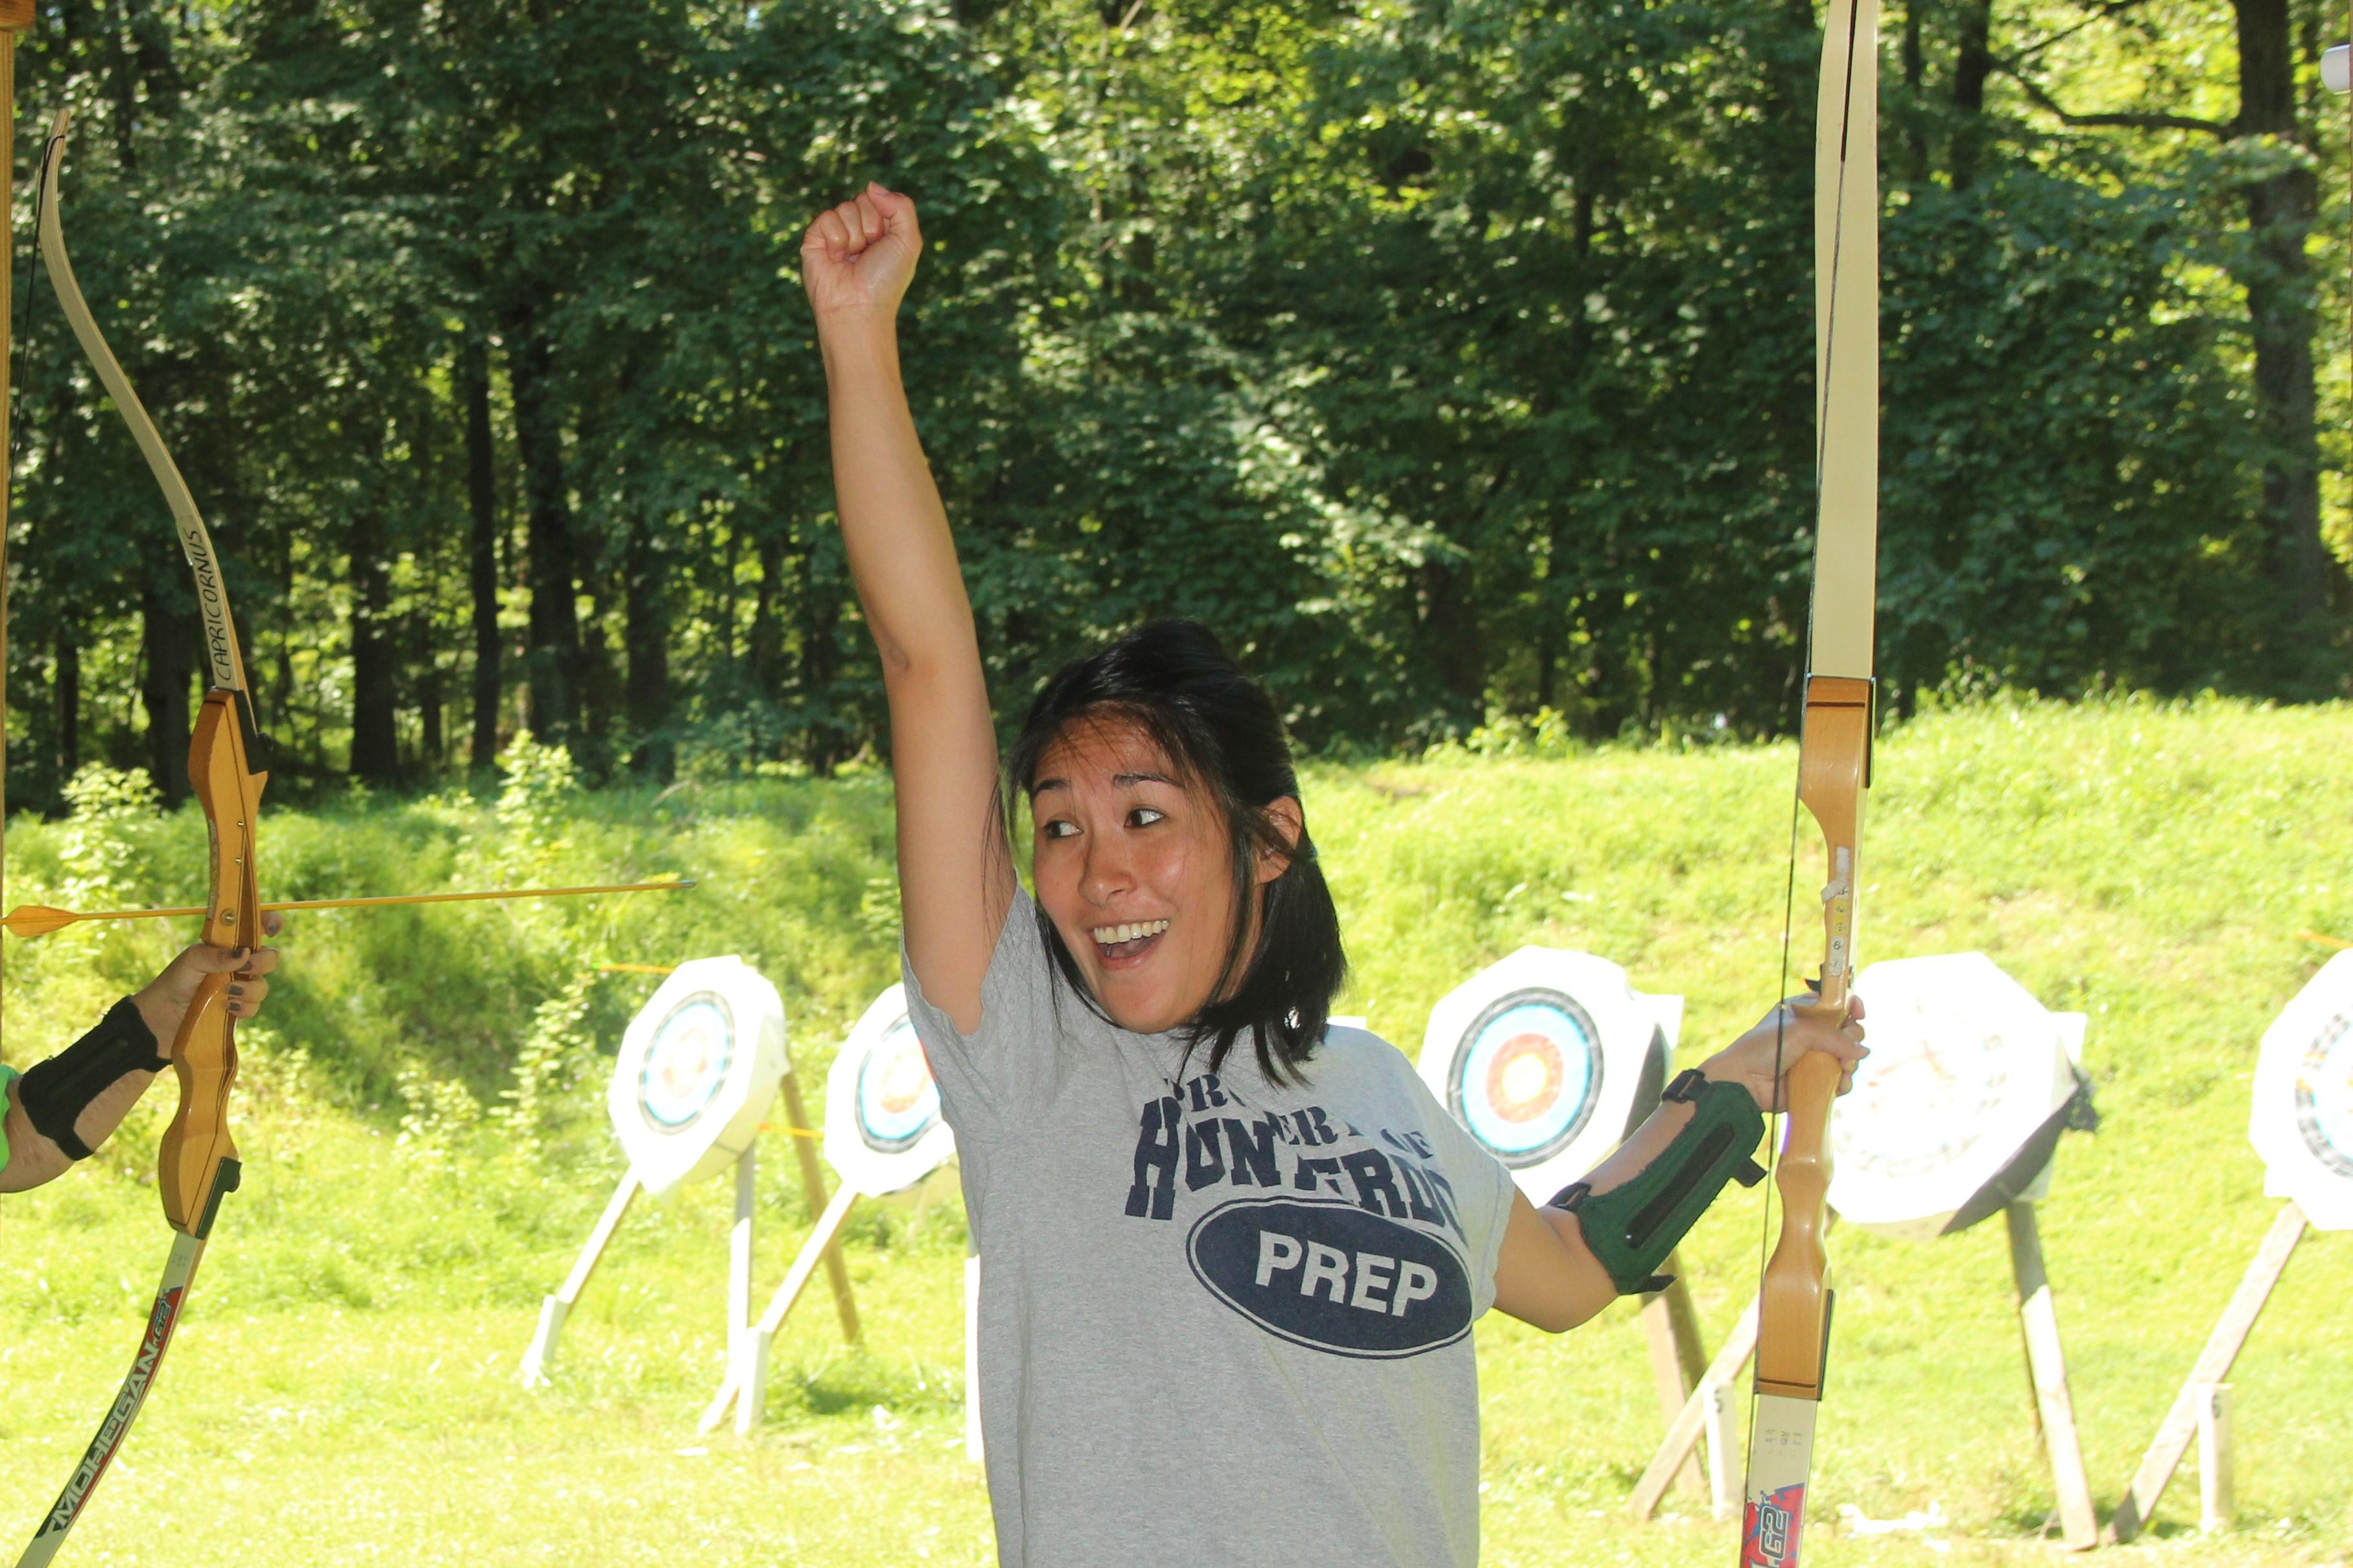 A student participating in archery, excited about her performance